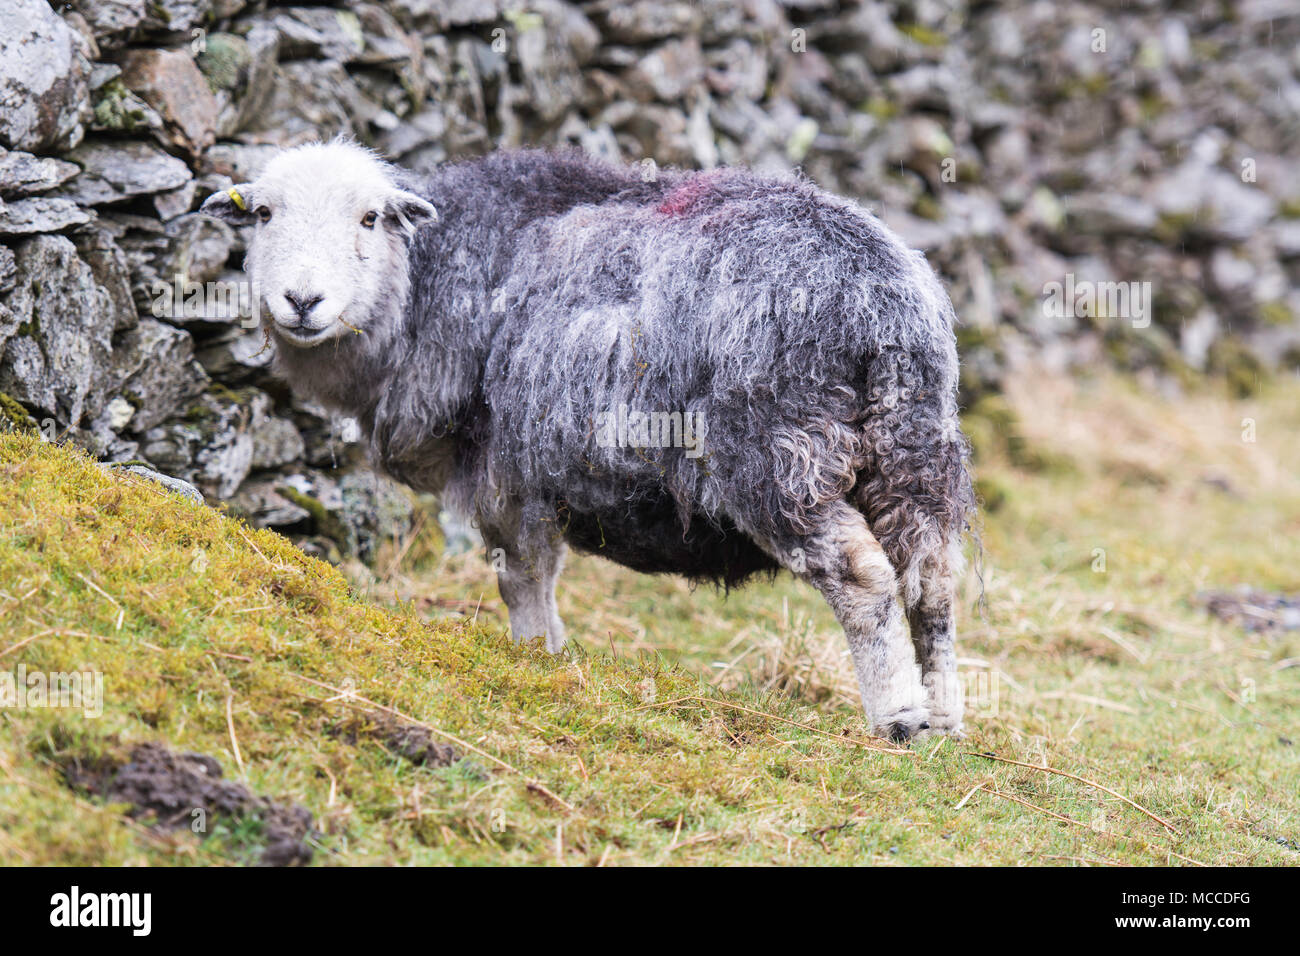 a herdwick sheep looking round and smiling at the camera - Stock Image